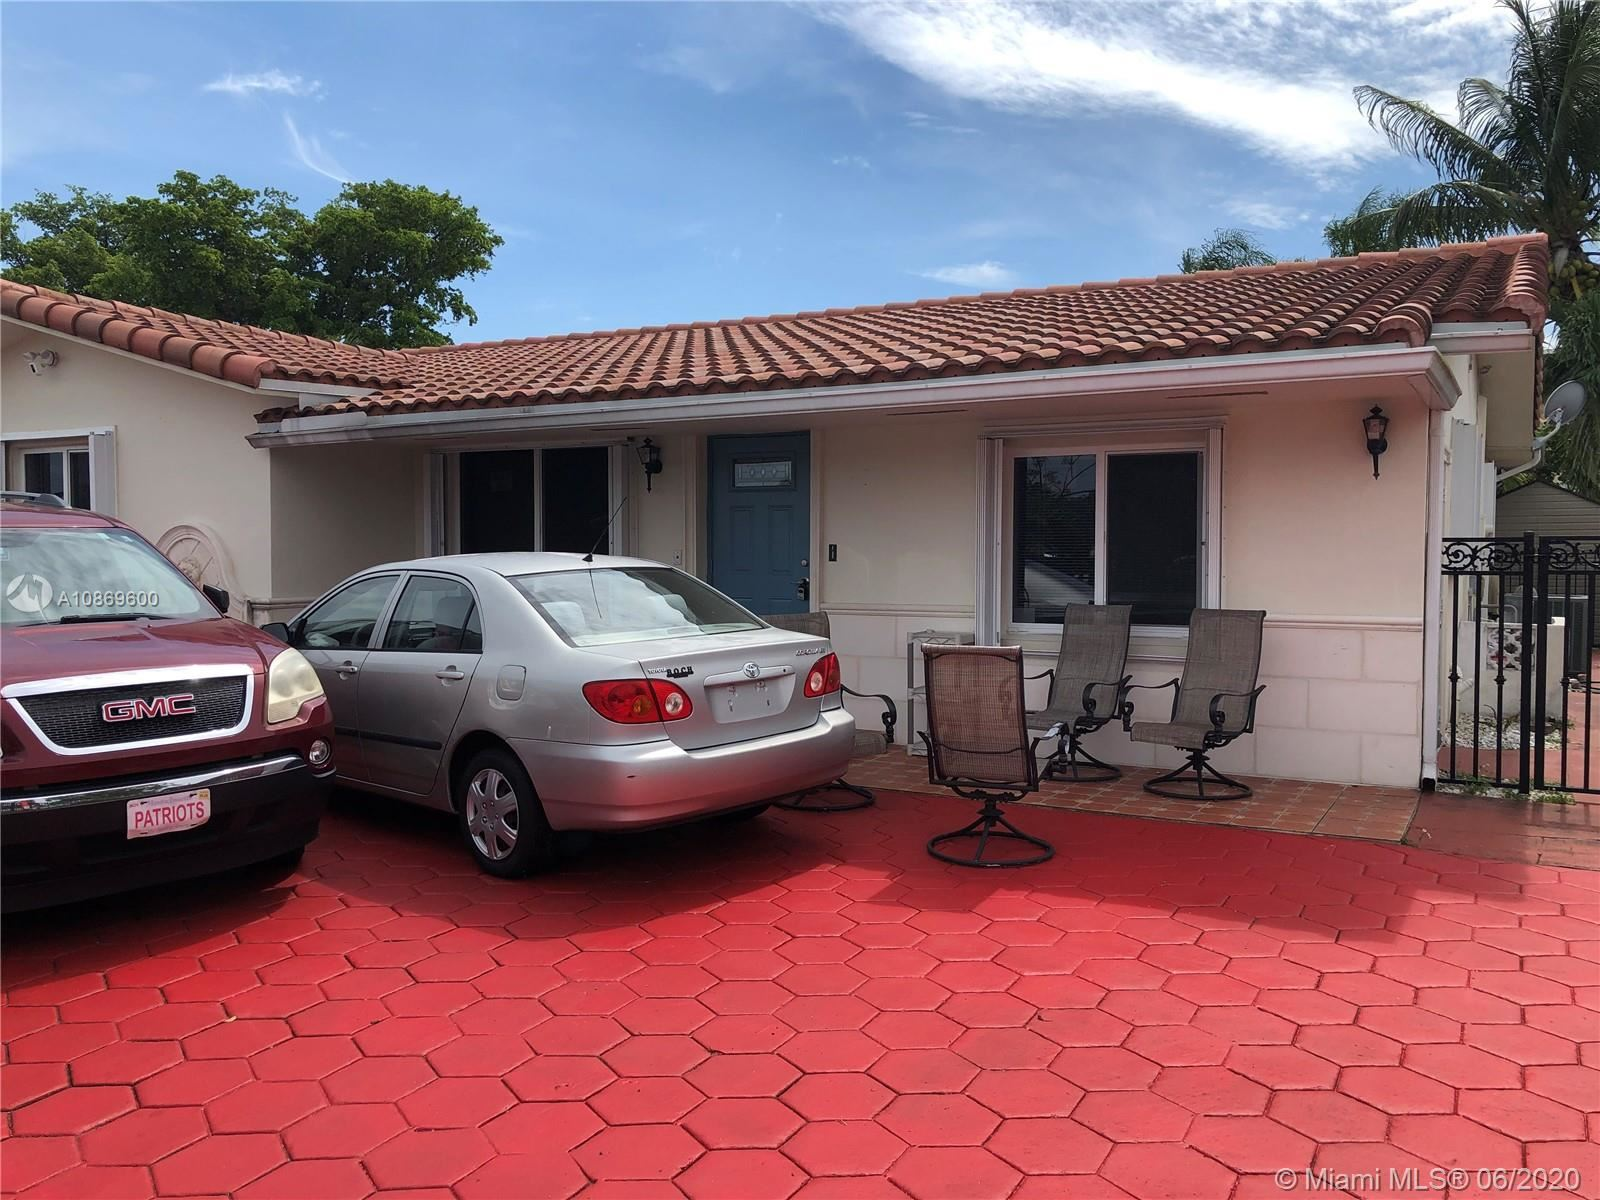 Photo of 3701 NW 78th Ave #1, Davie, FL 33024 (MLS # A10869600)